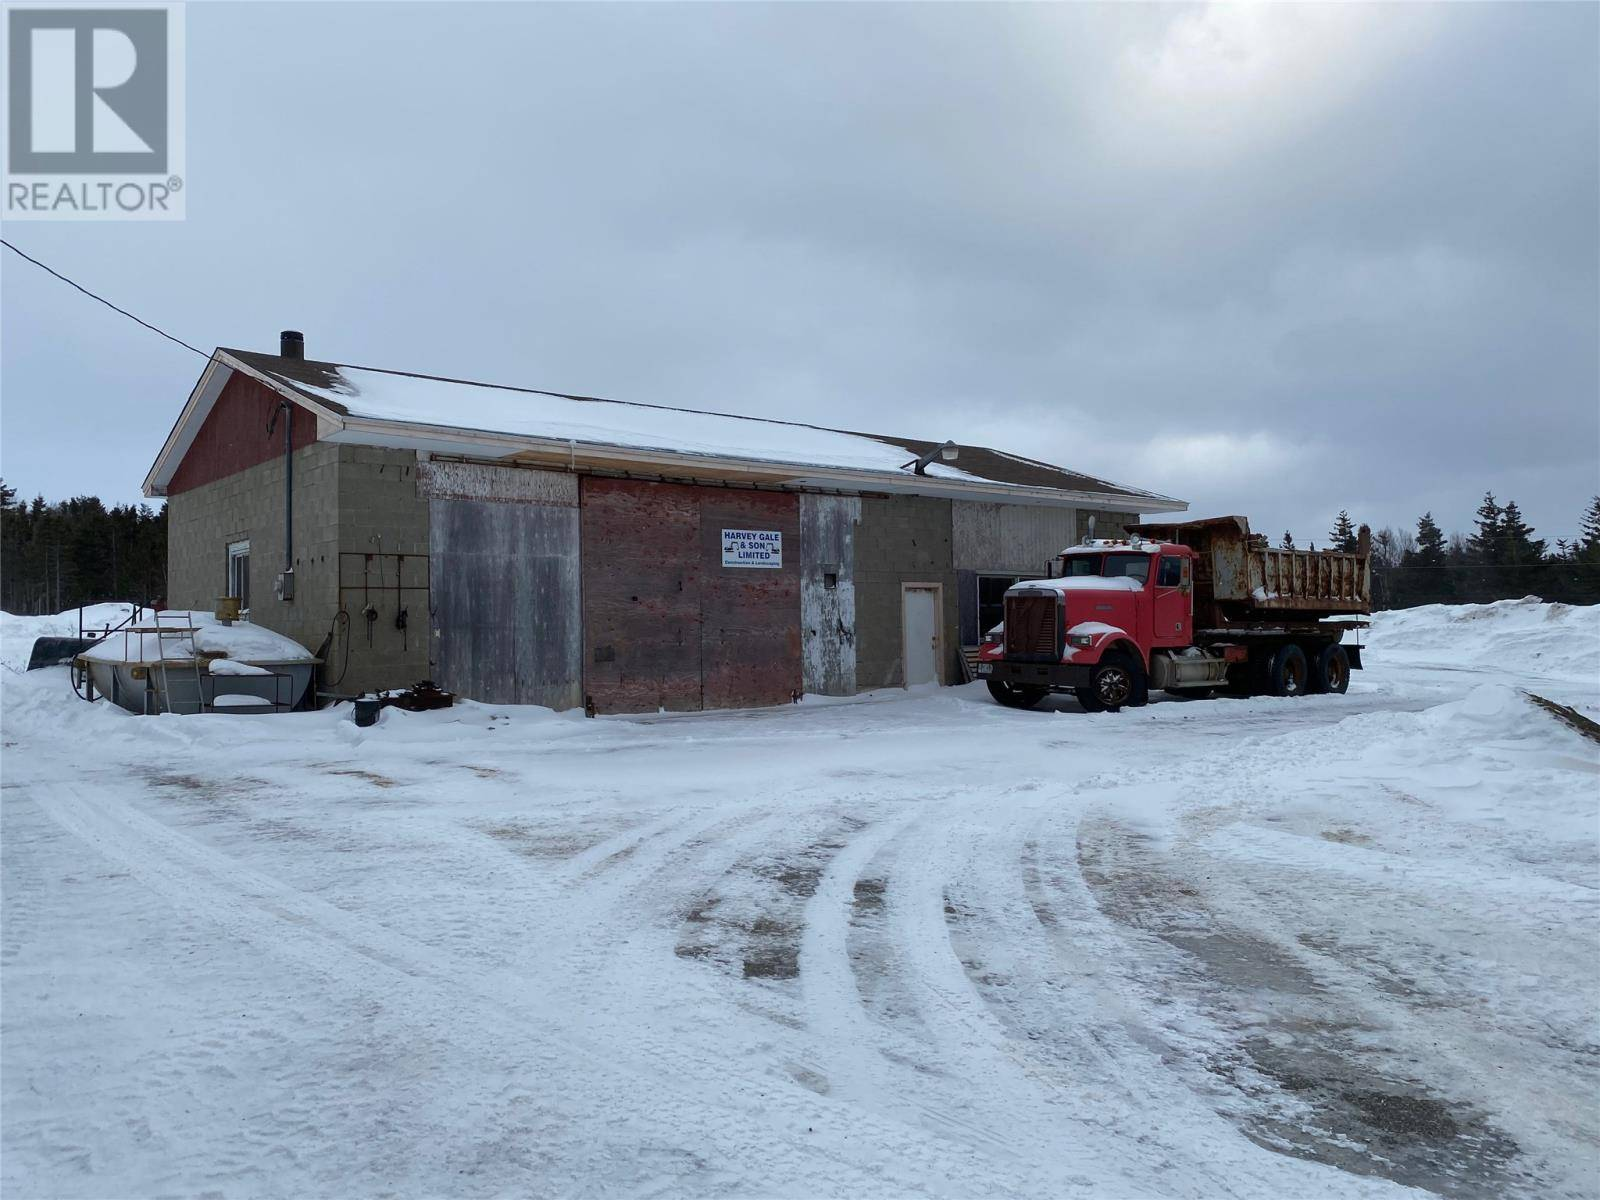 Residential property for sale at 20 Seal Cove Rd Stephenville Crossing Newfoundland - MLS: 1211557